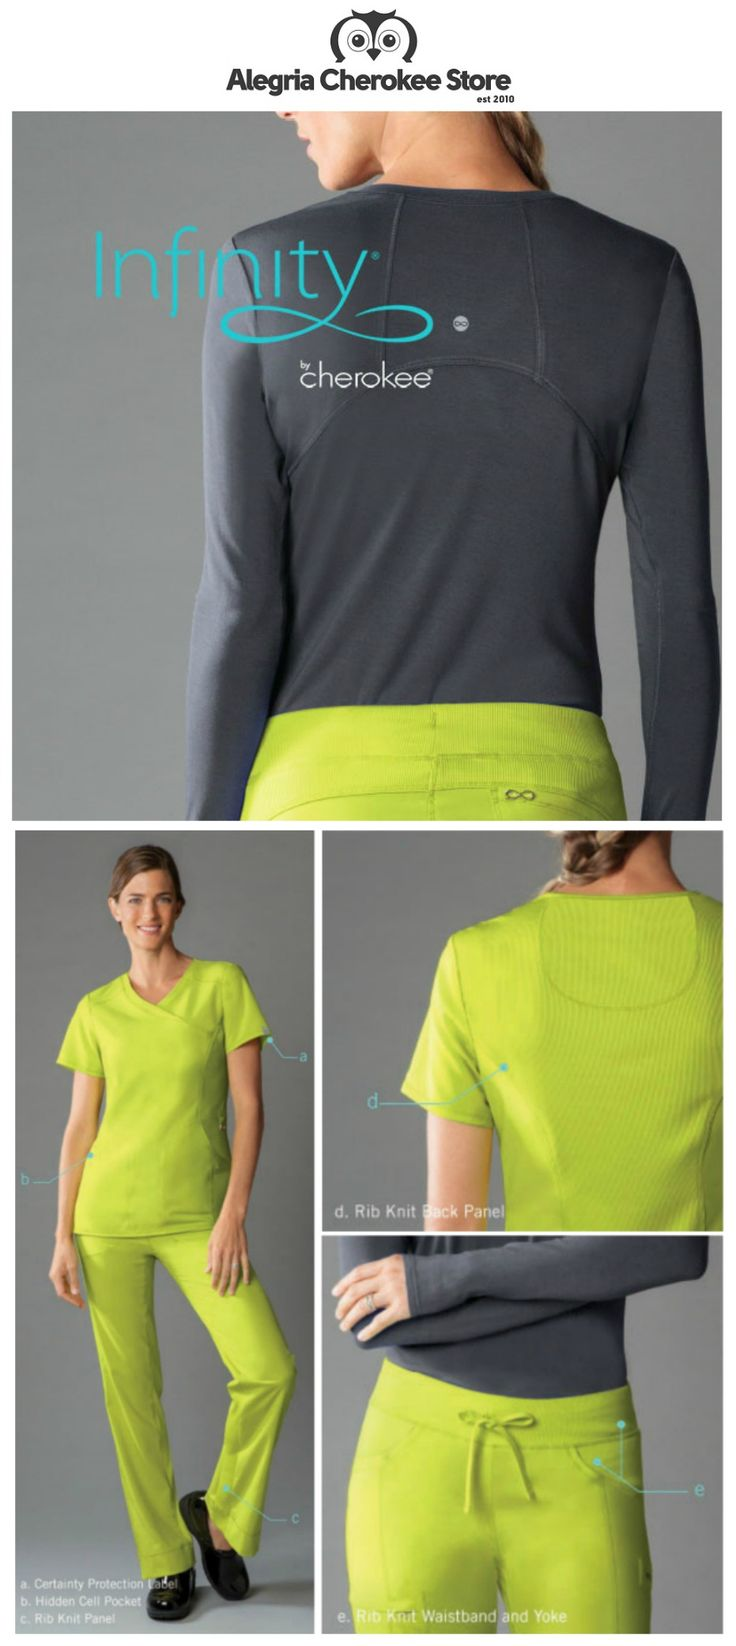 It's finally here!  The new Infinity by Cherokee collection: an athletic-inspired lifestyle collection for scrubs-wearing professionals.  Designed for fit and performance, Infinity's modern styling and innovative designs offer fit-to-flatter detailing.  Also features Certainty fabric technology, which reduces bacteria on the uniform, providing intelligent freshness and peace of mind. | Alegria Cherokee Store